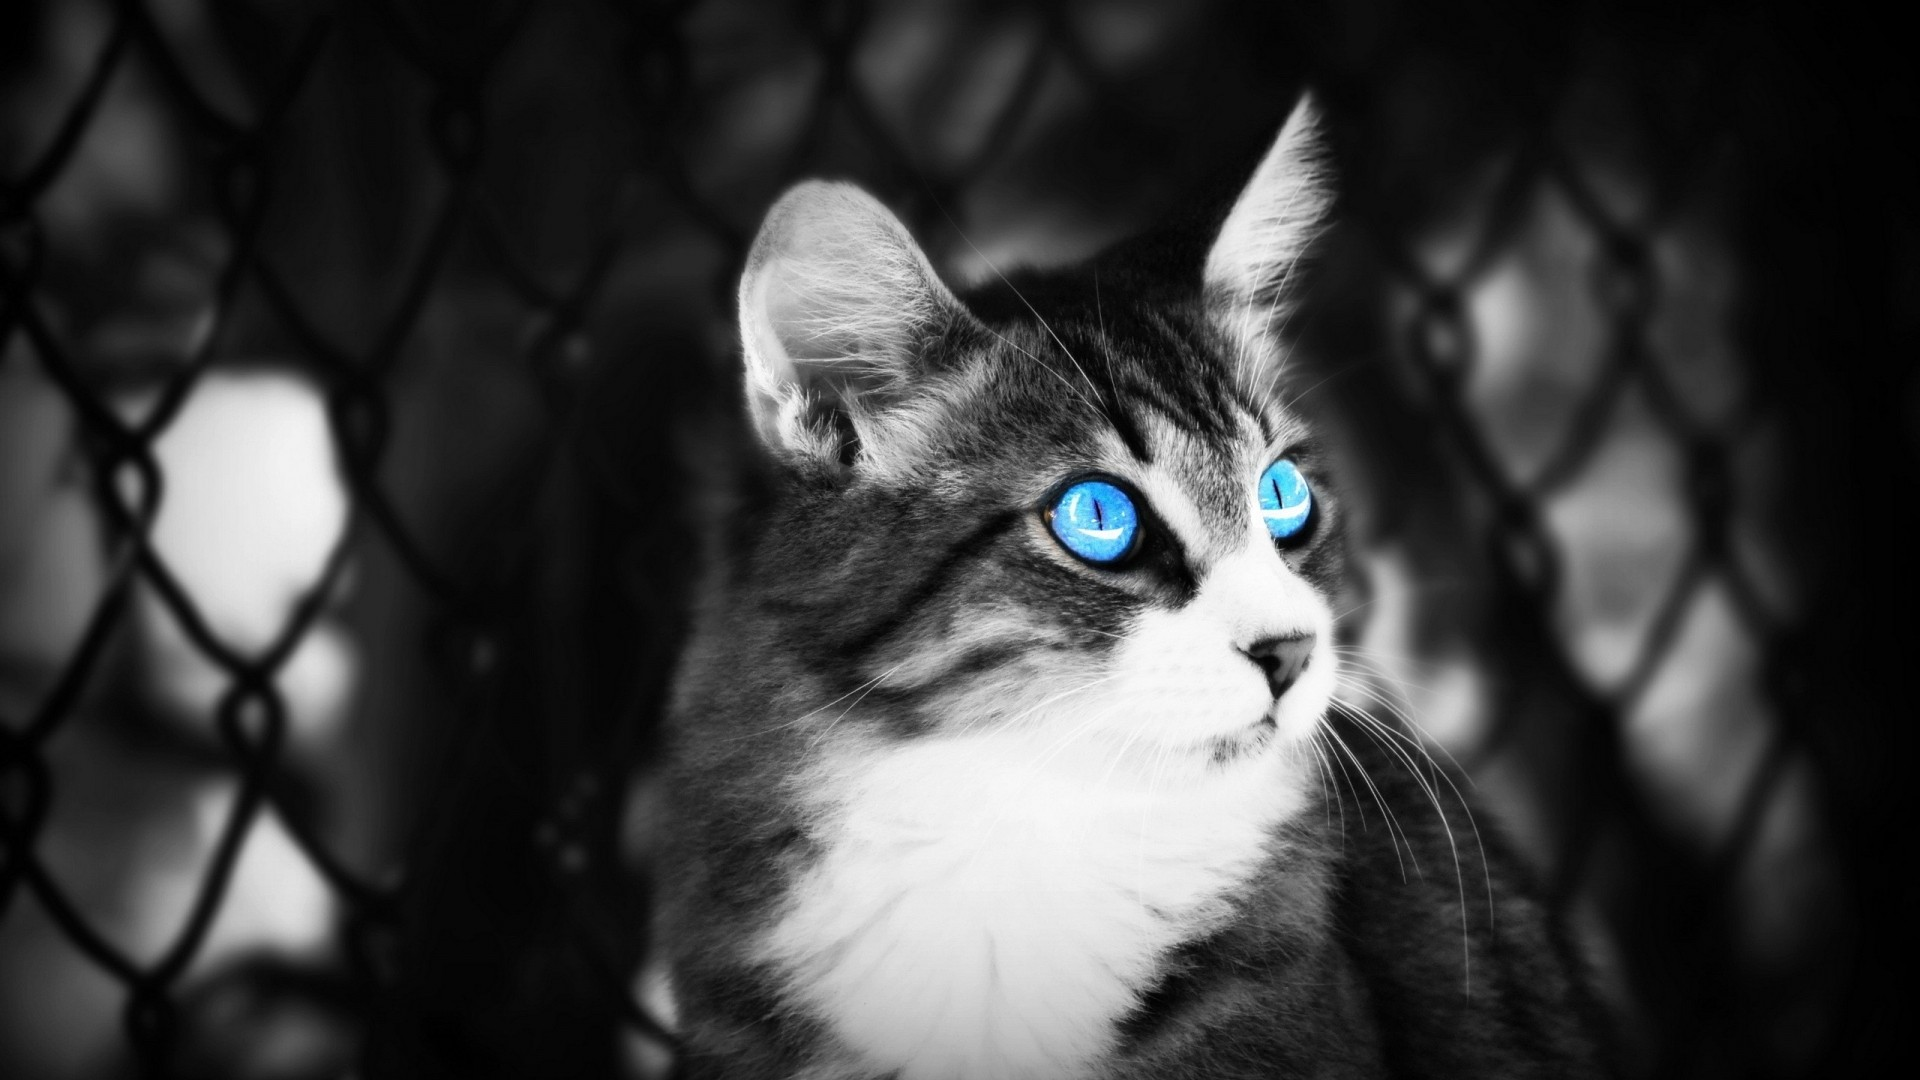 Free Download Blue Eyes Cat Black And White Hd Wallpaper Blue Eyes Cat Black And 1920x1080 For Your Desktop Mobile Tablet Explore 49 Dark Blue And White Wallpaper Dark